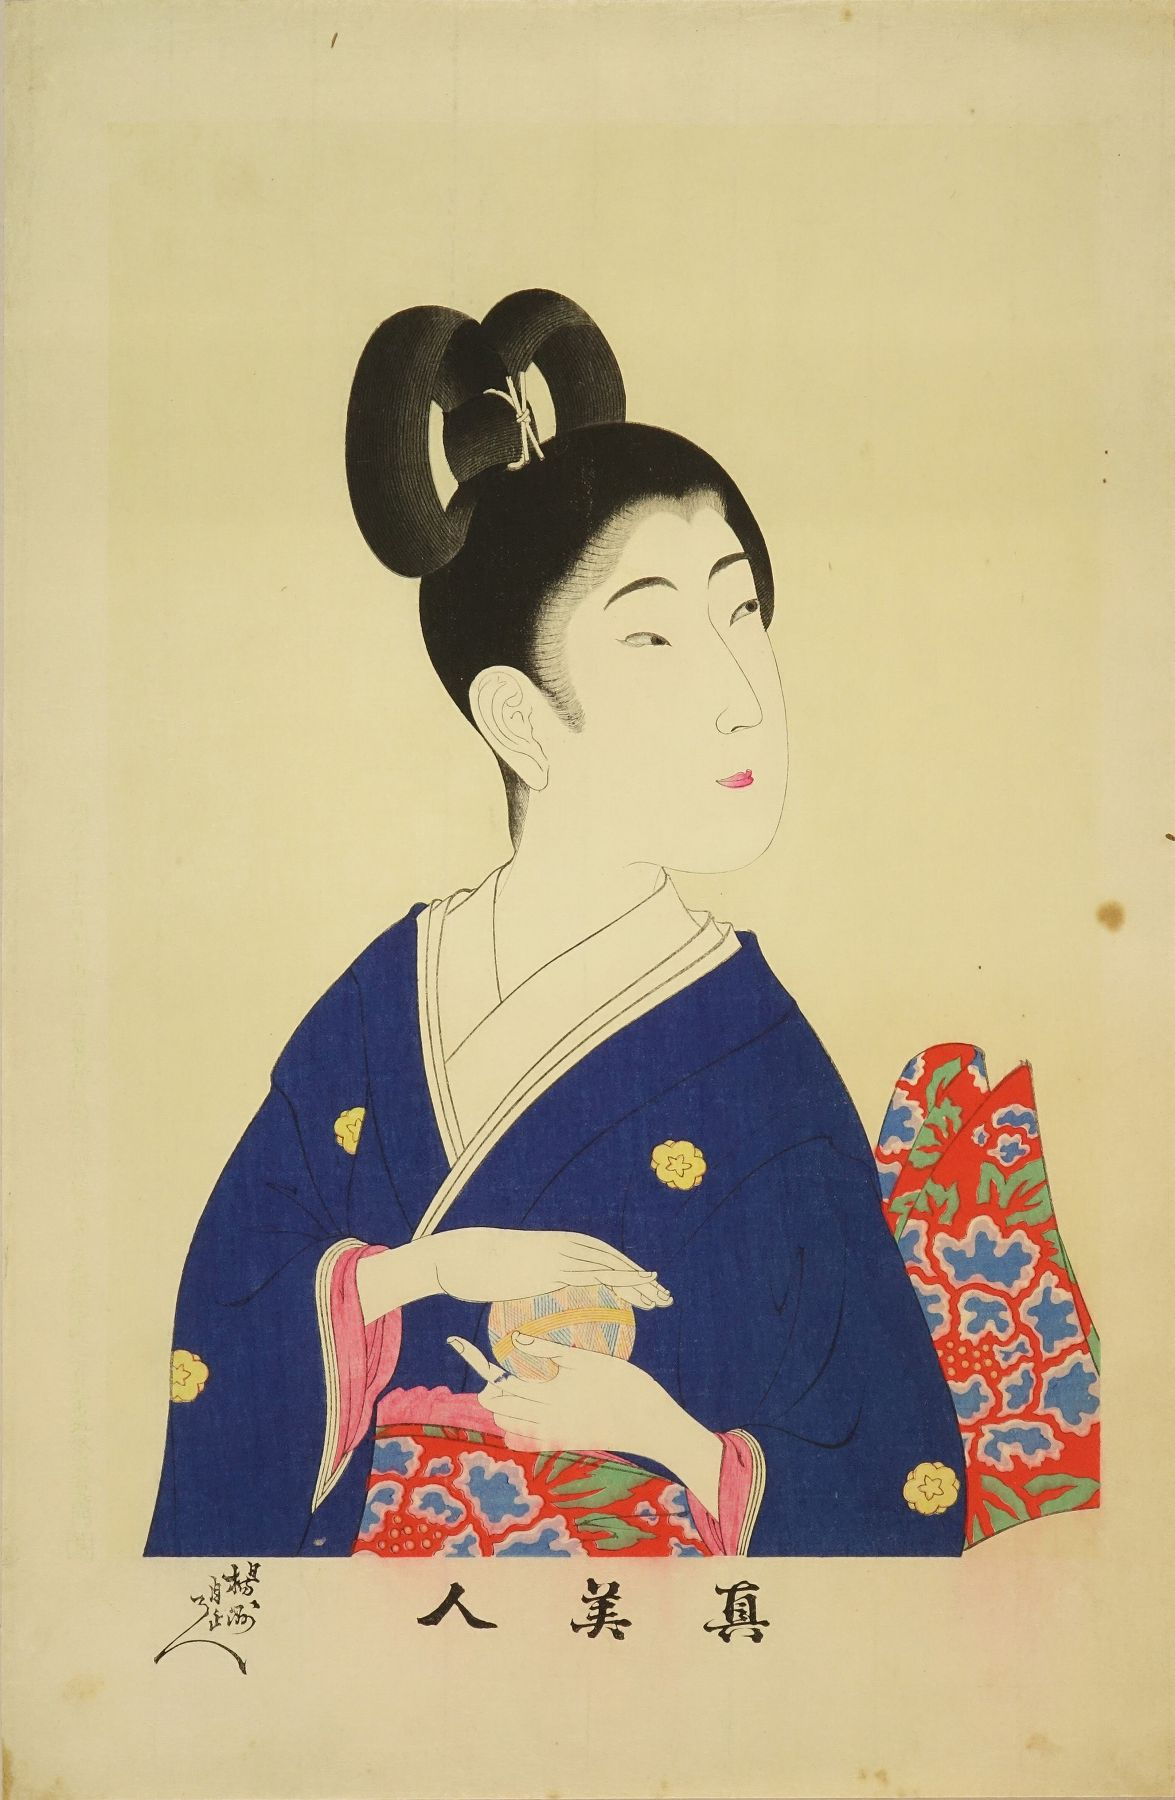 CHIKANOBU No. 17, from <i>Shin bijin</i> (True beauties)